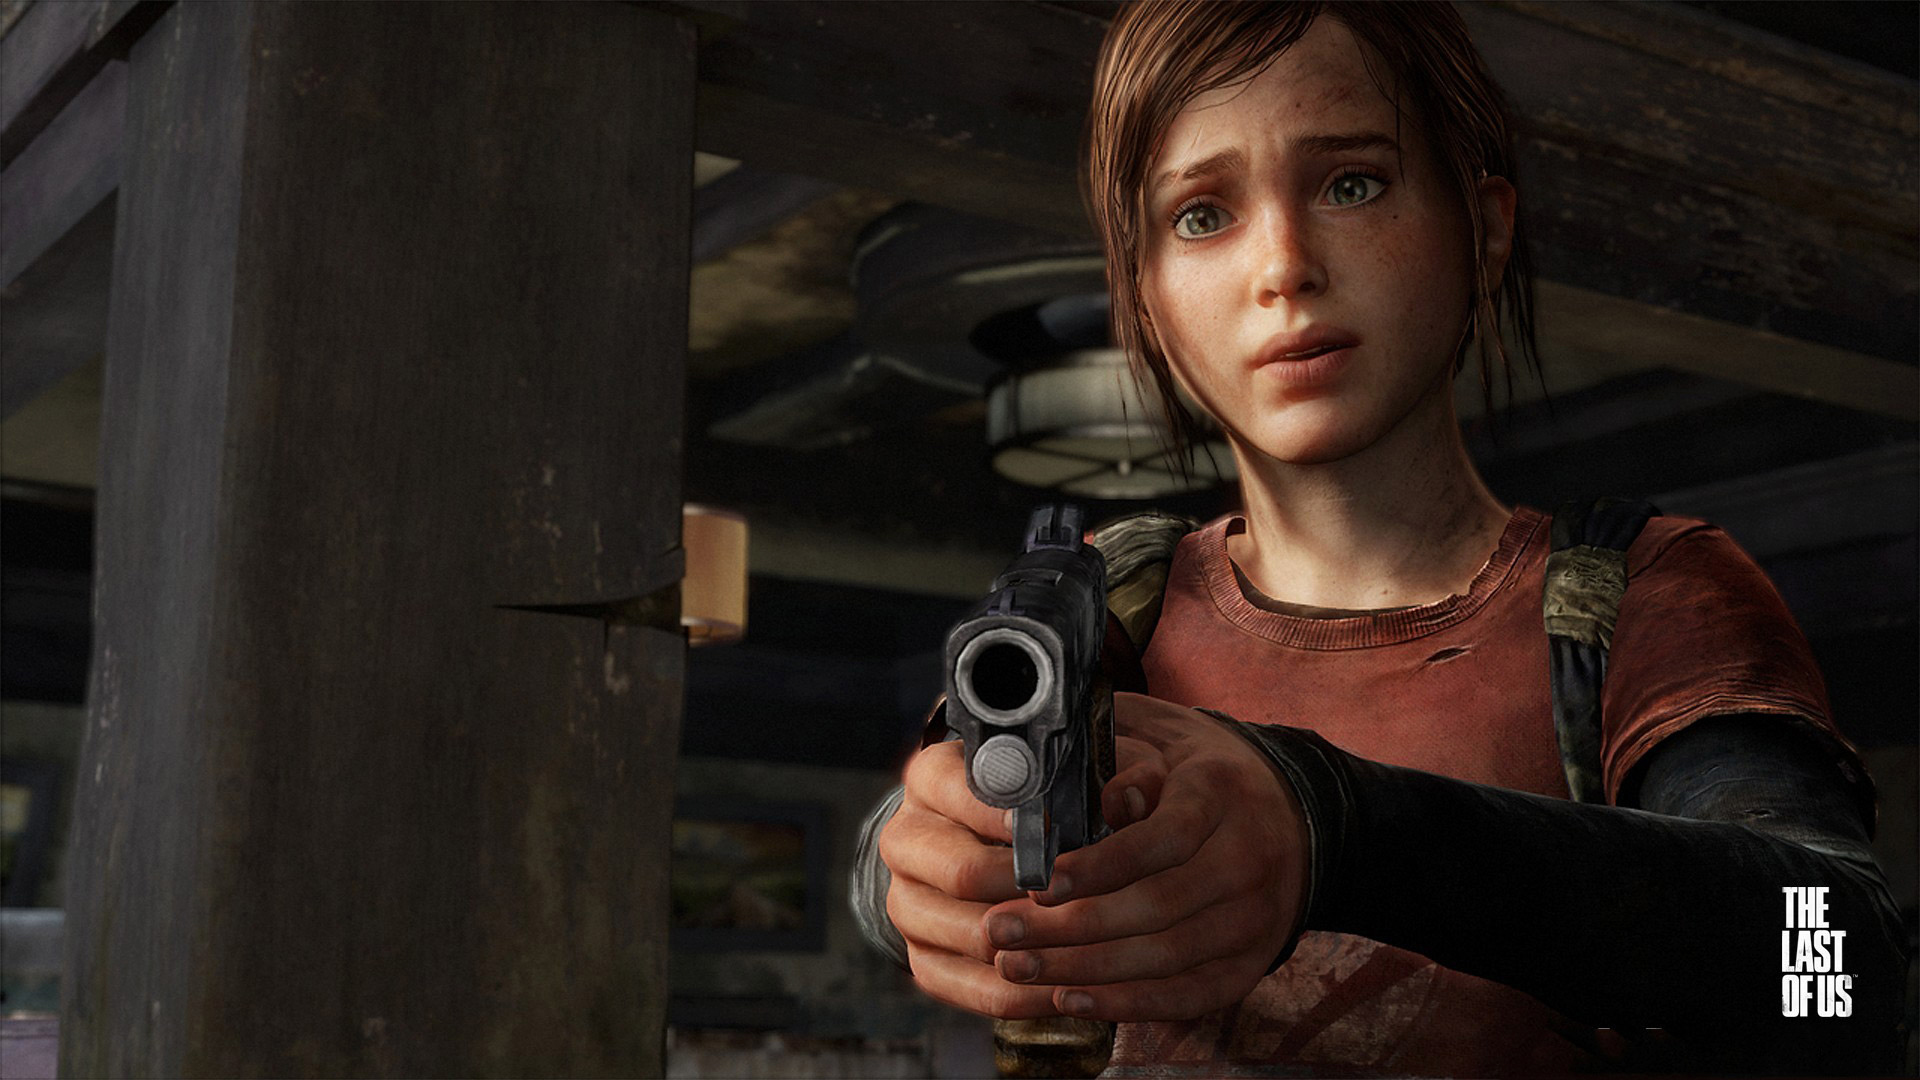 Ellie From The Last Of Us Hd Wallpapers Ellie The Last of Us HD 1920x1080